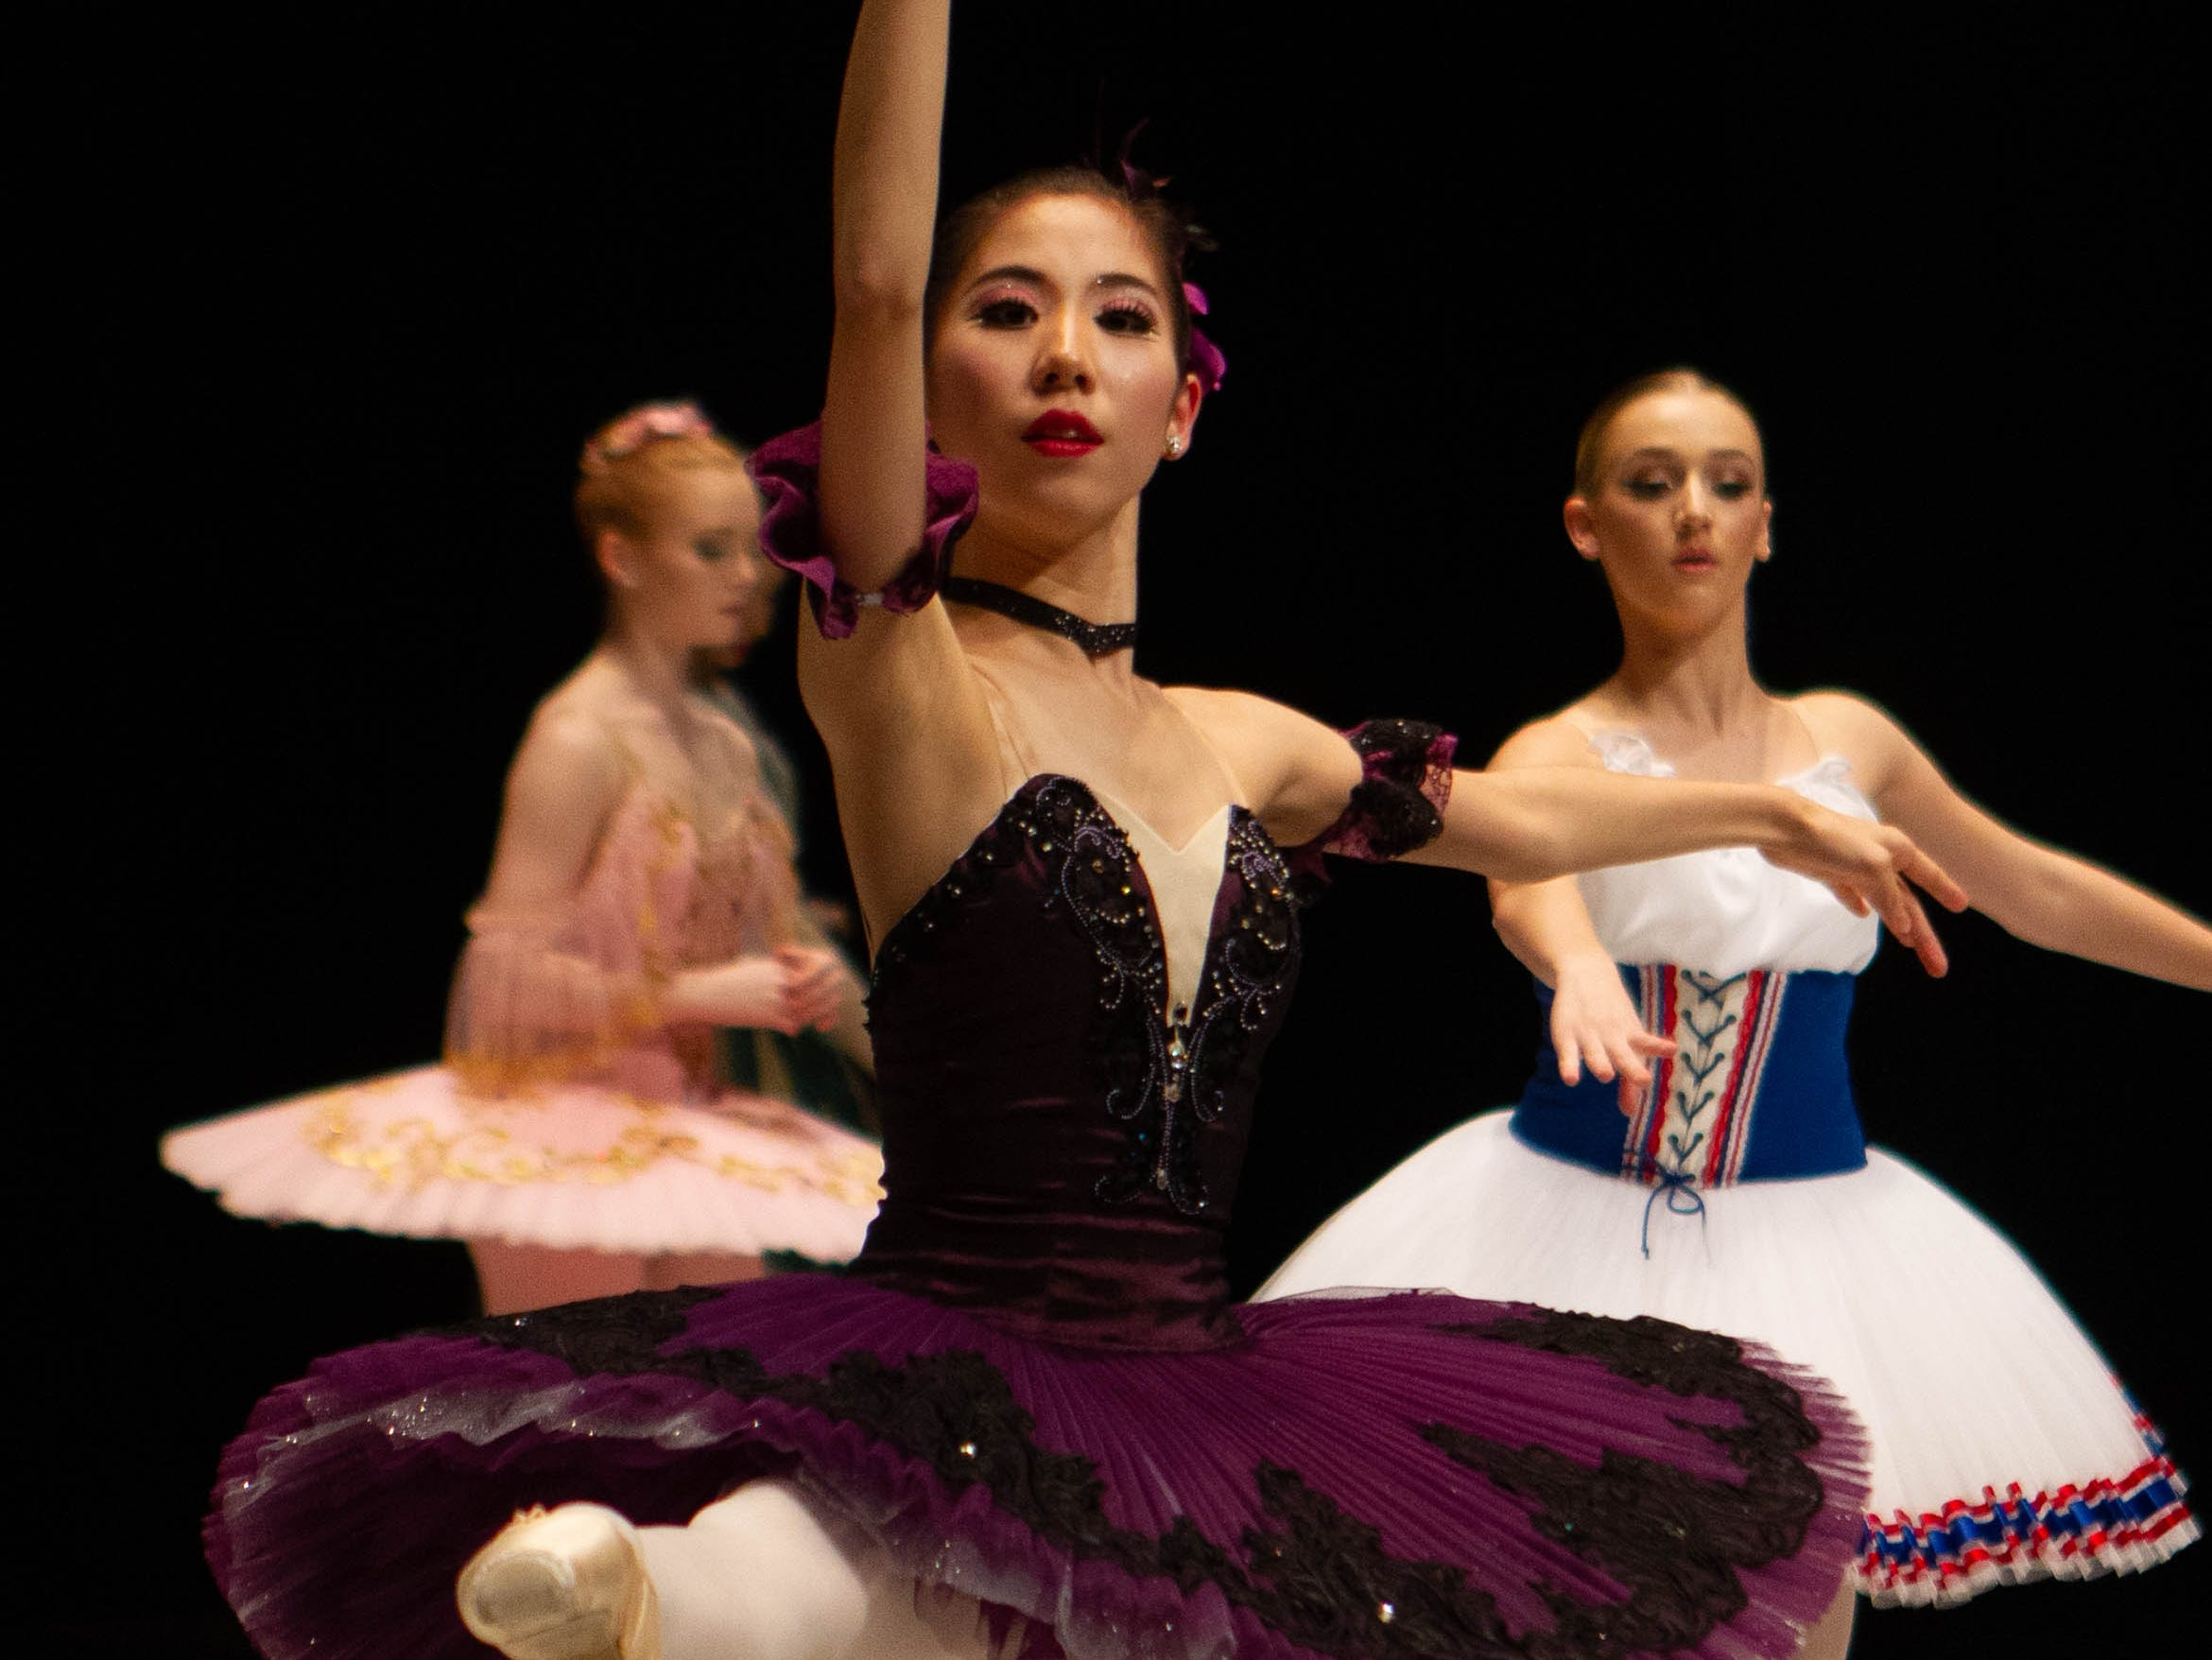 Rimi Mizuoka warms up on stage with other contestants at the inaugural year of the Grand Jeté dance competition in the Senior Ballet division, at the South Carolina Governor's School for the Arts and Humanities, on Saturday, March 2, 2019.